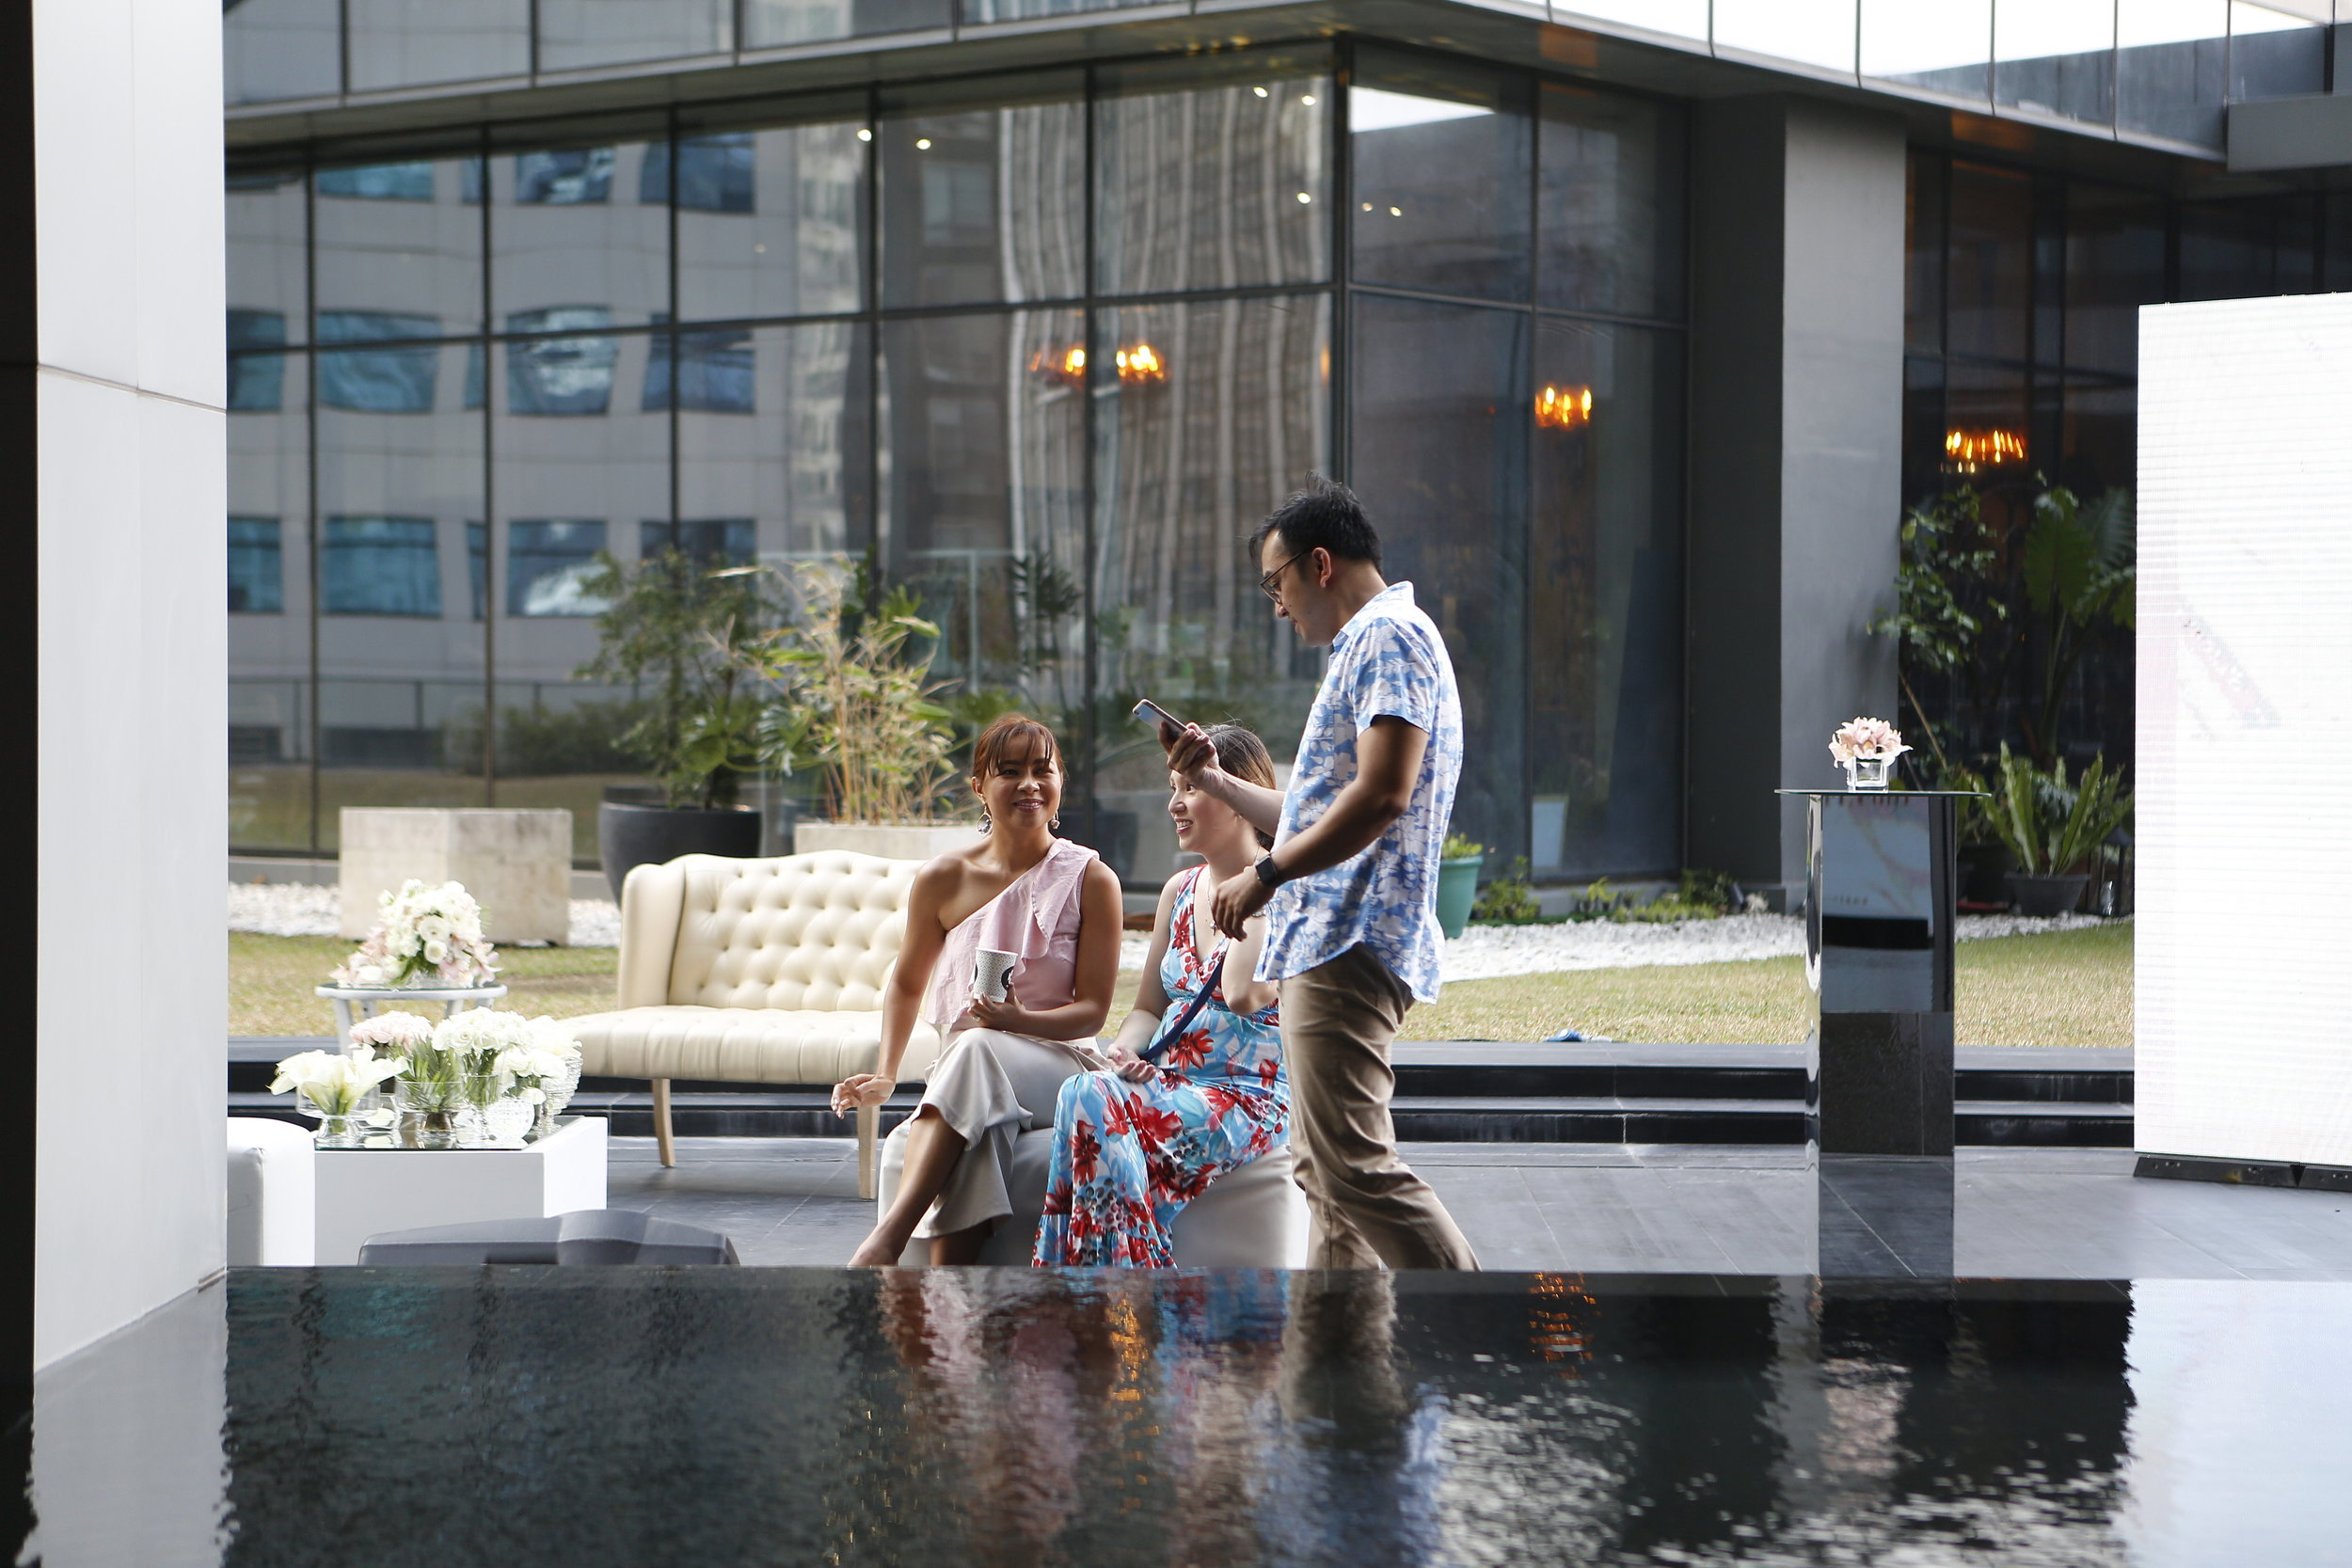 Cocktails by a reflecting pool <3 with my good friend Princess Velasco and her husband, Dr. Bistek Rosario.